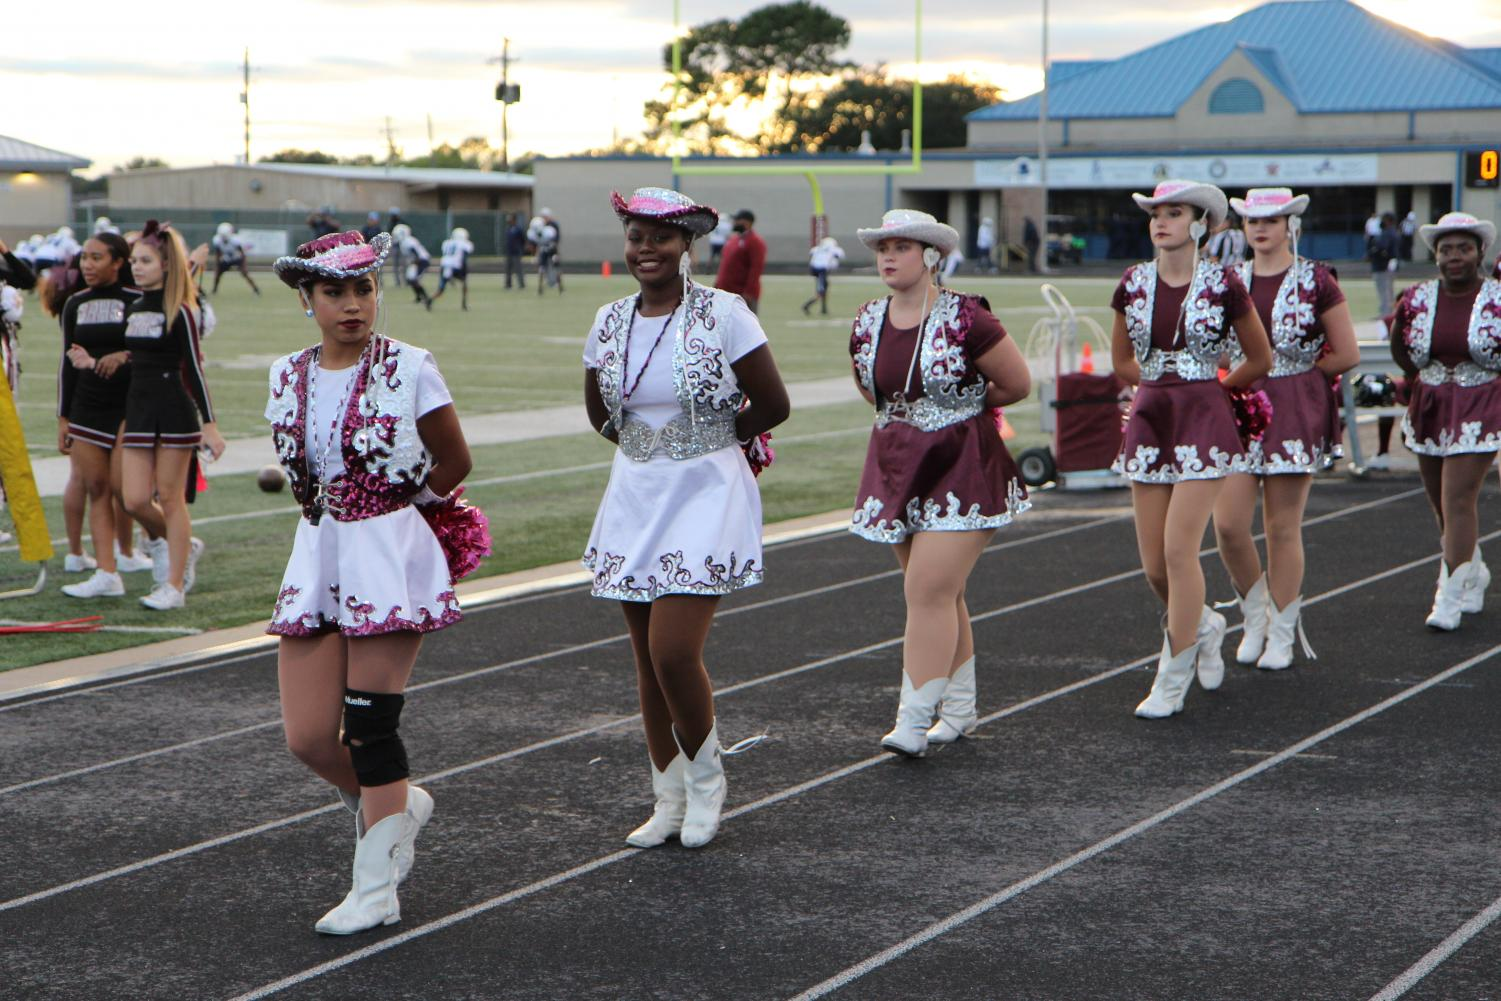 The Lariettes at the homecoming game.